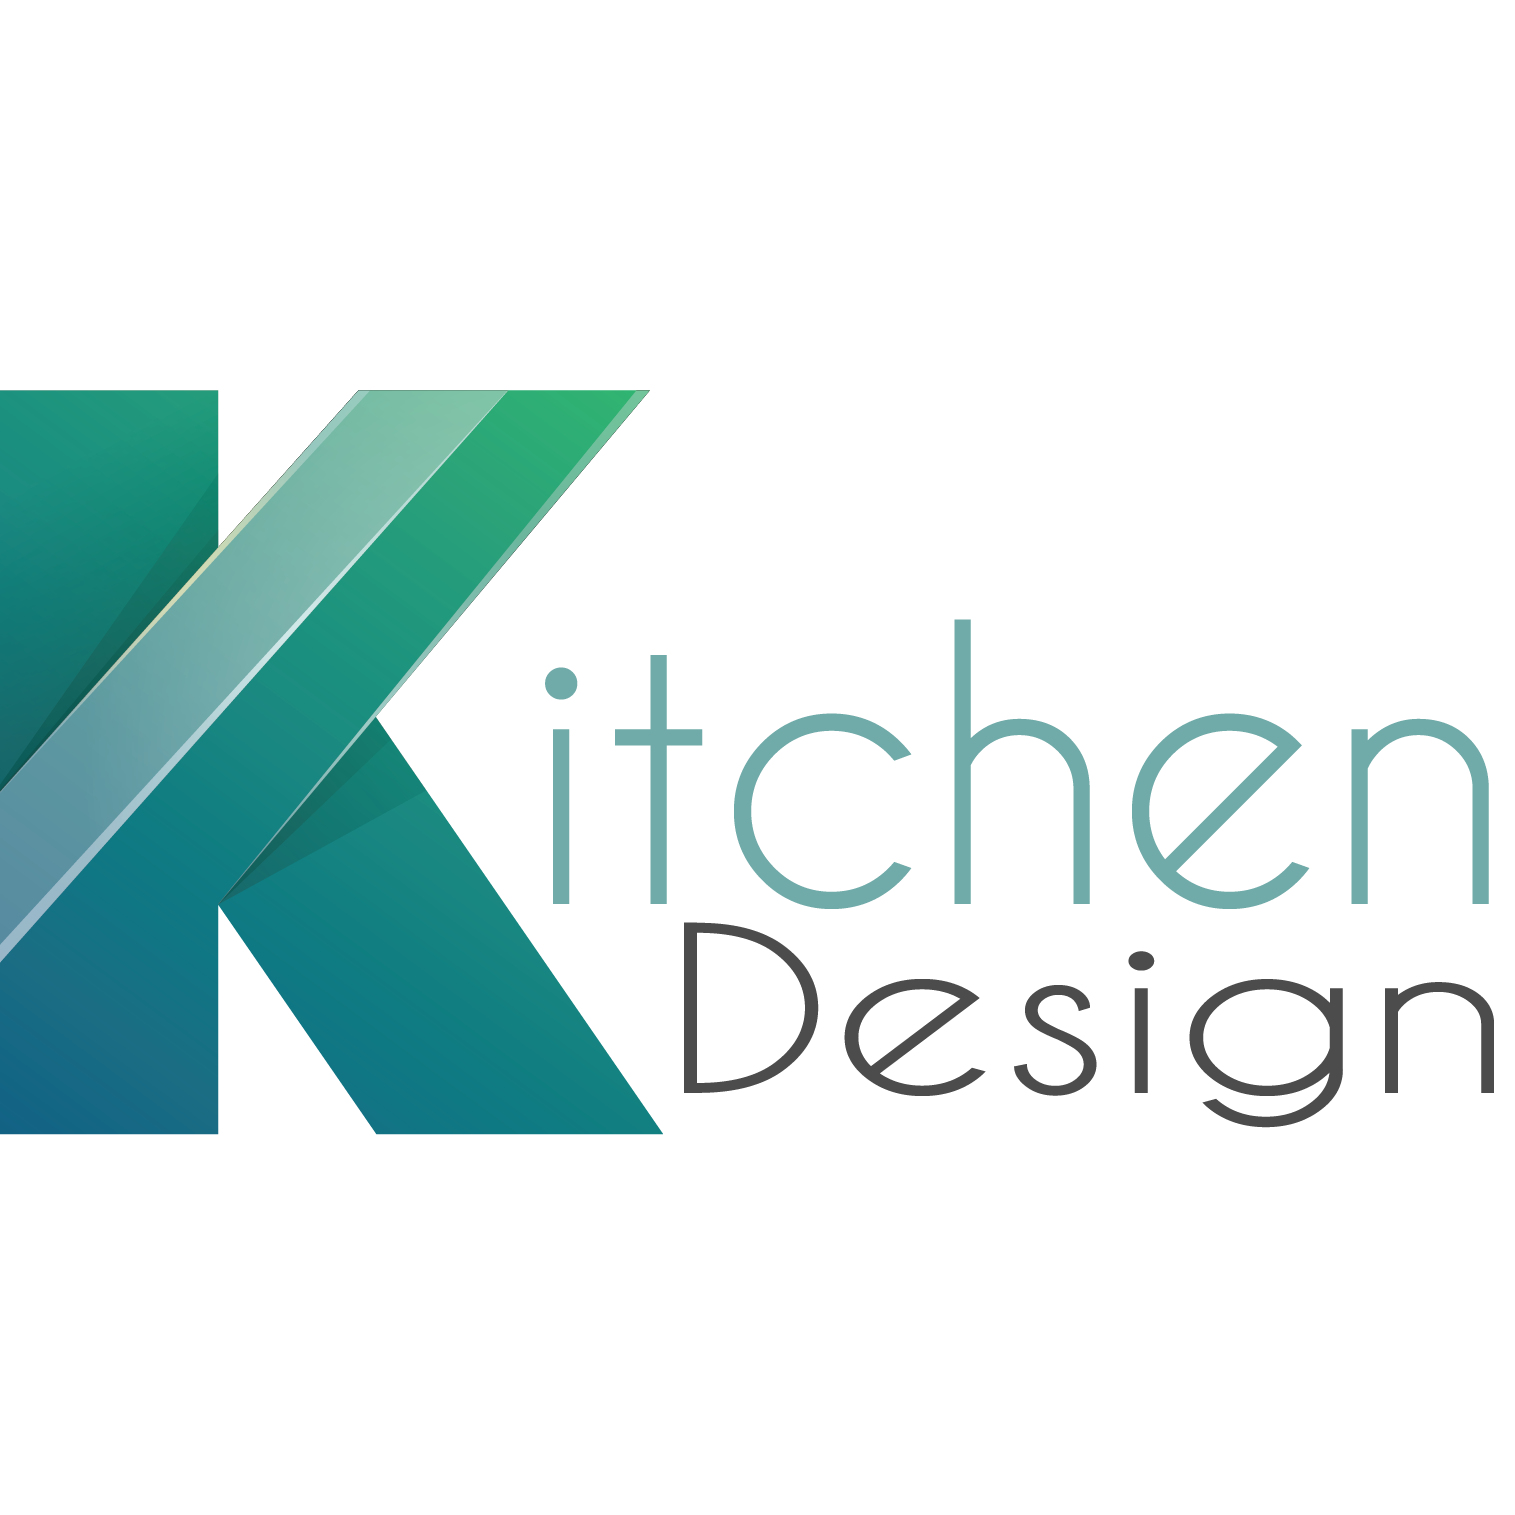 Kitchen Design, LLC.